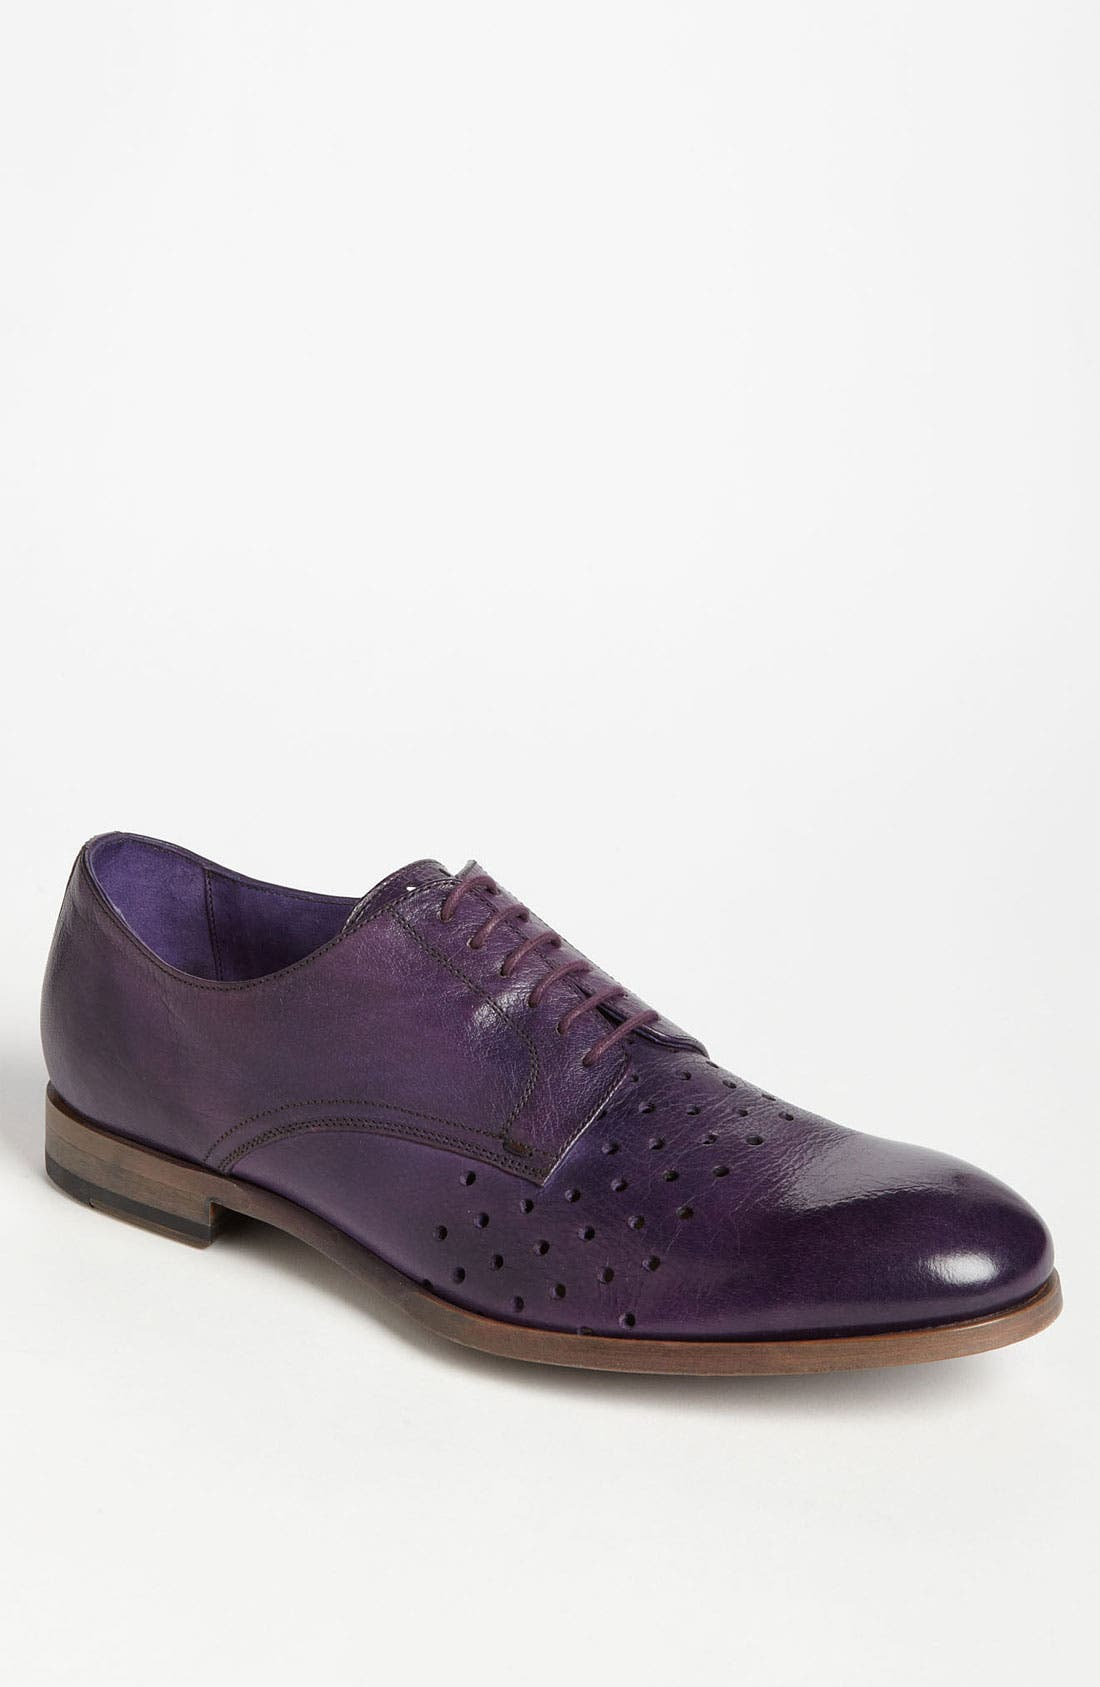 Alternate Image 1 Selected - Paul Smith 'Seagul' Perforated Derby